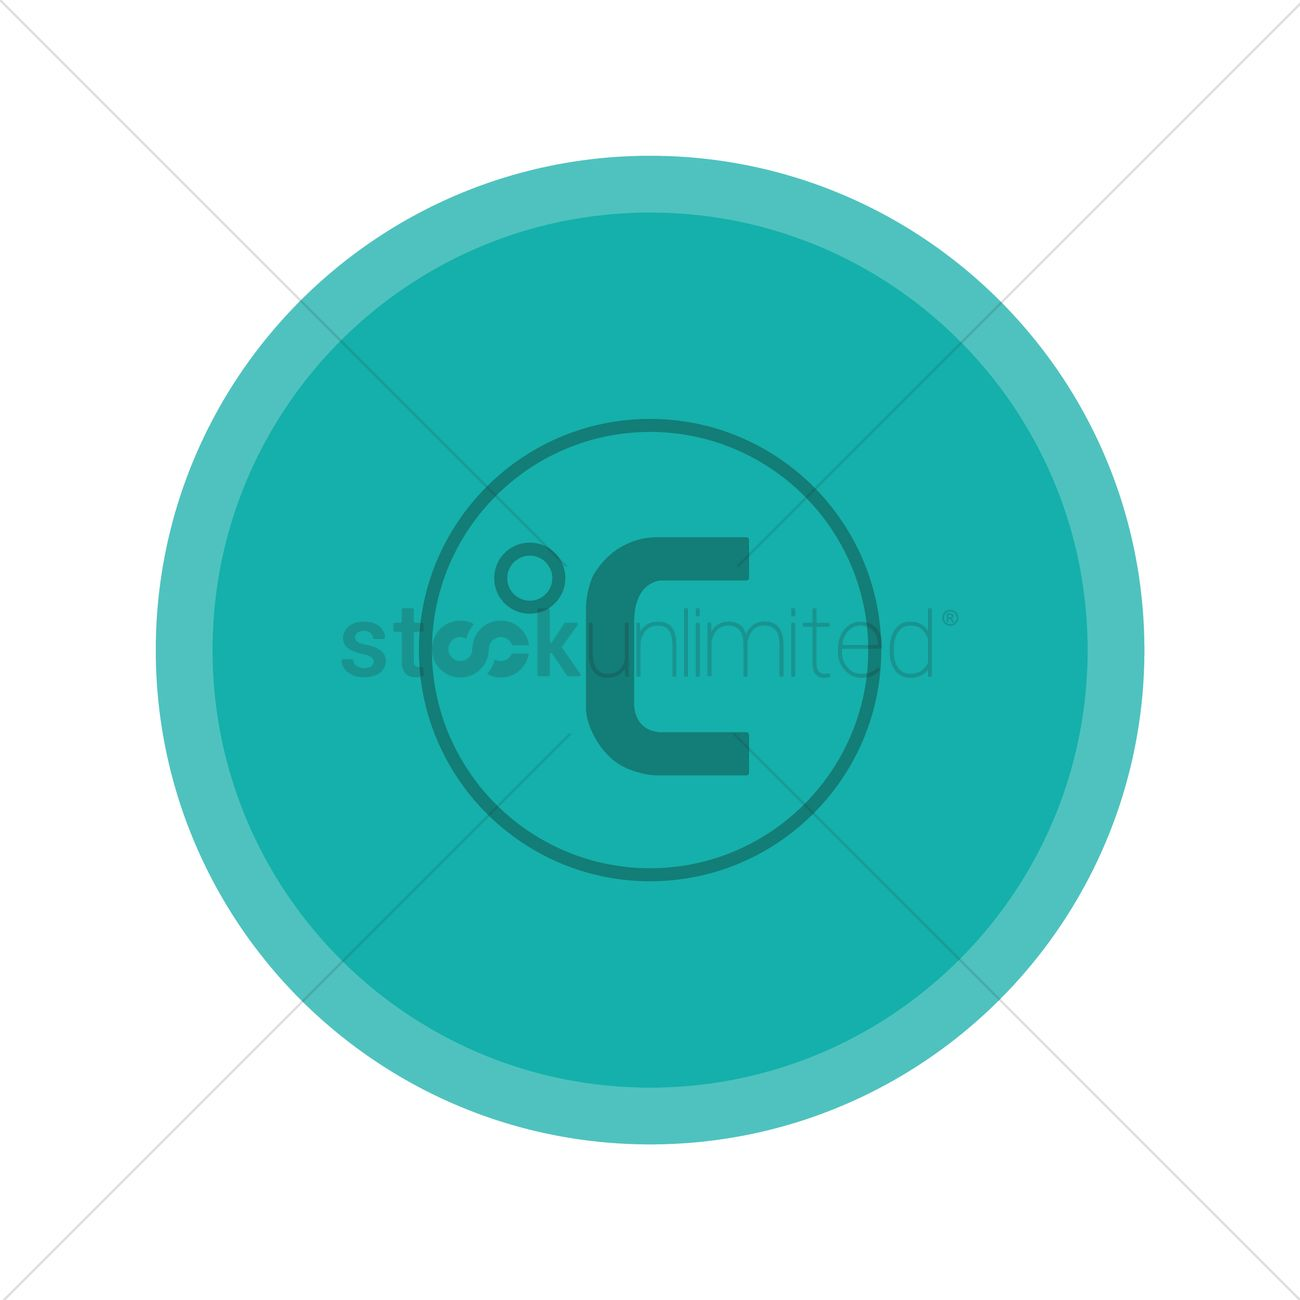 Free Degree Celsius Symbol Vector Image 1284739 Stockunlimited